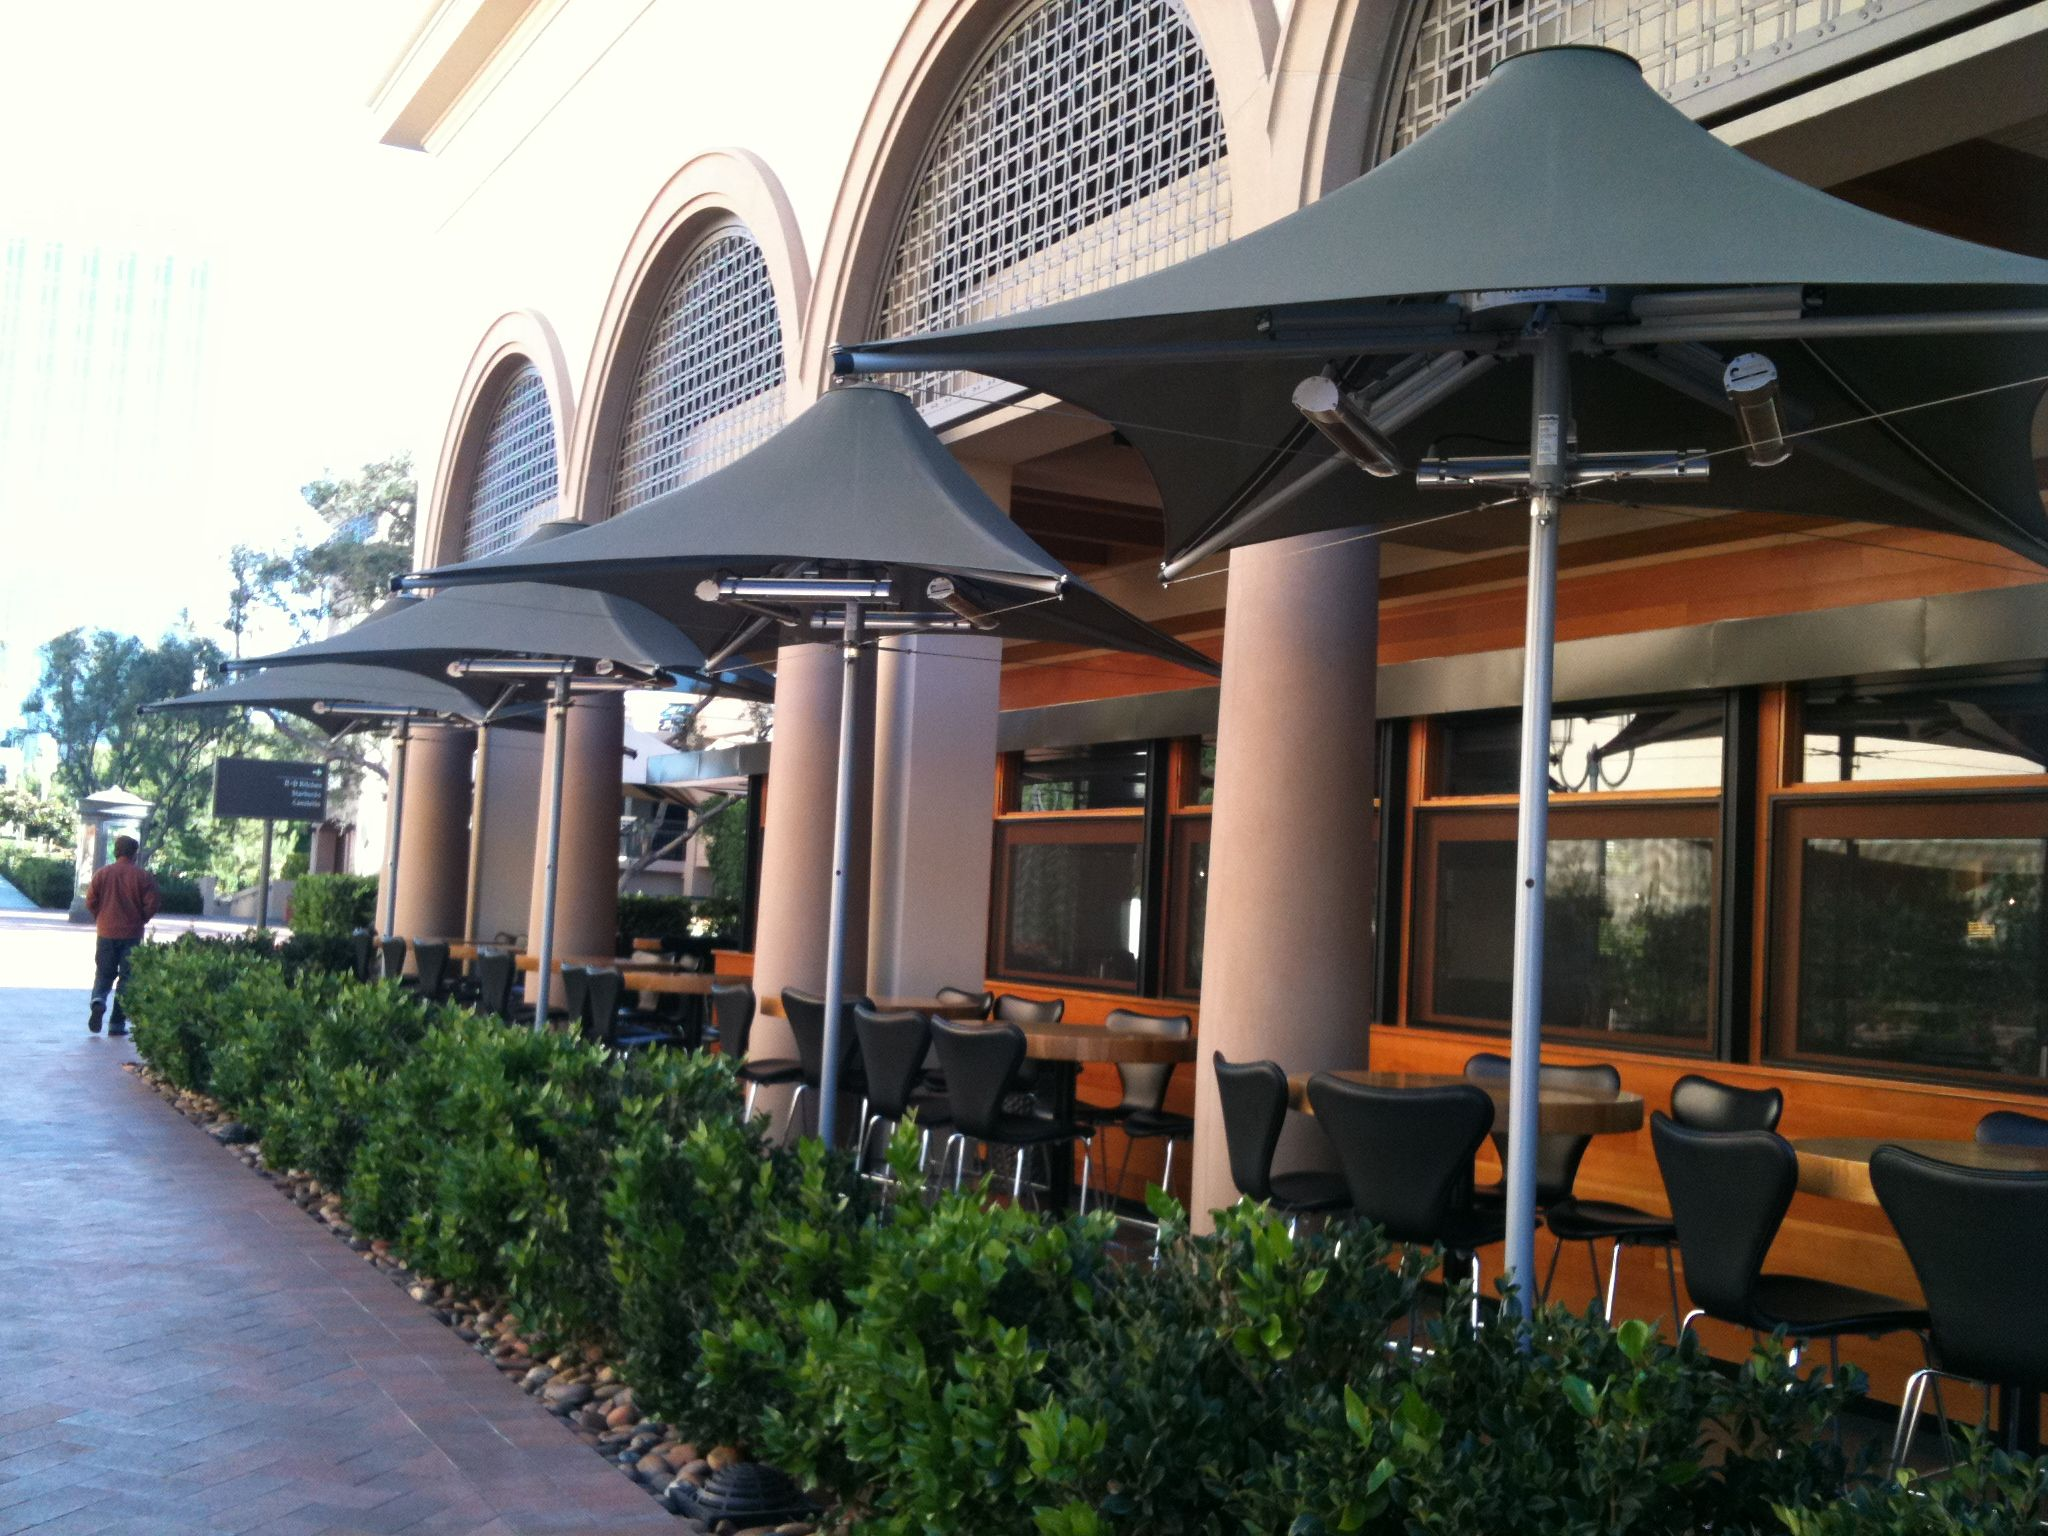 Perfect Shown Here Are Heated Patio Umbrellas And R+D Kitchenu0027s Patio Dining Area.